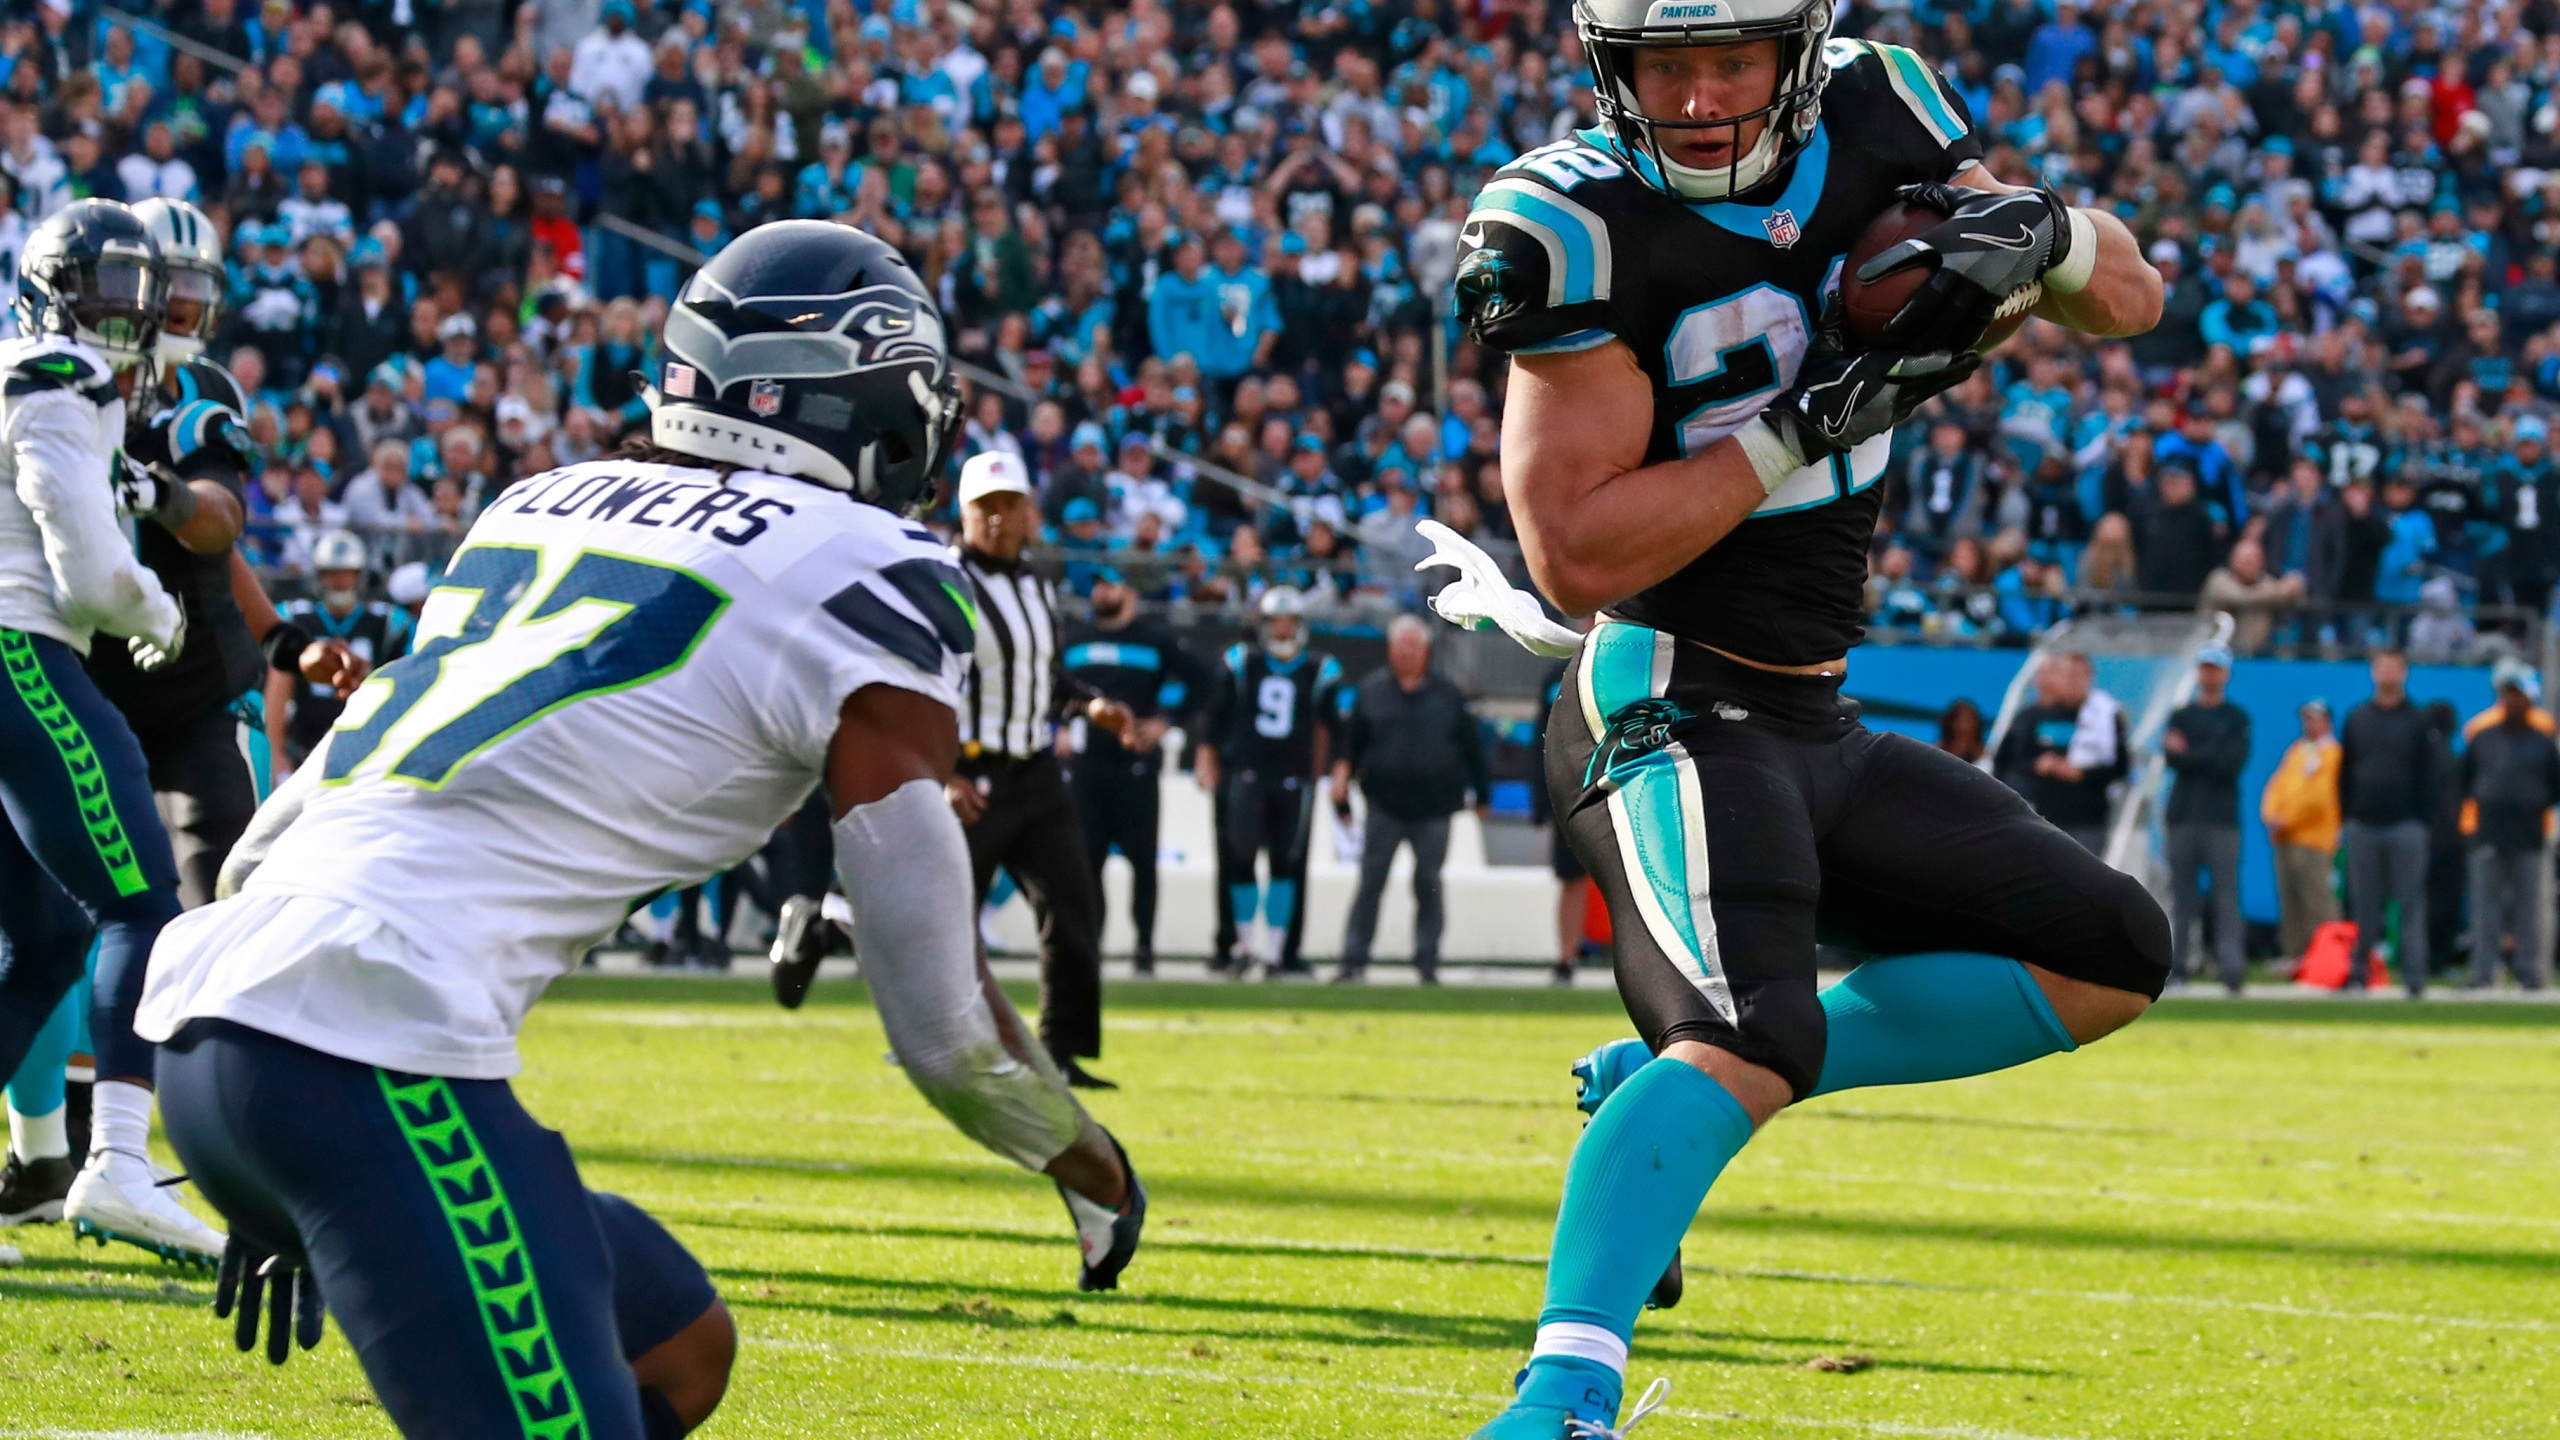 Seahawks_Panthers_Football_39266-159532.jpg97120269